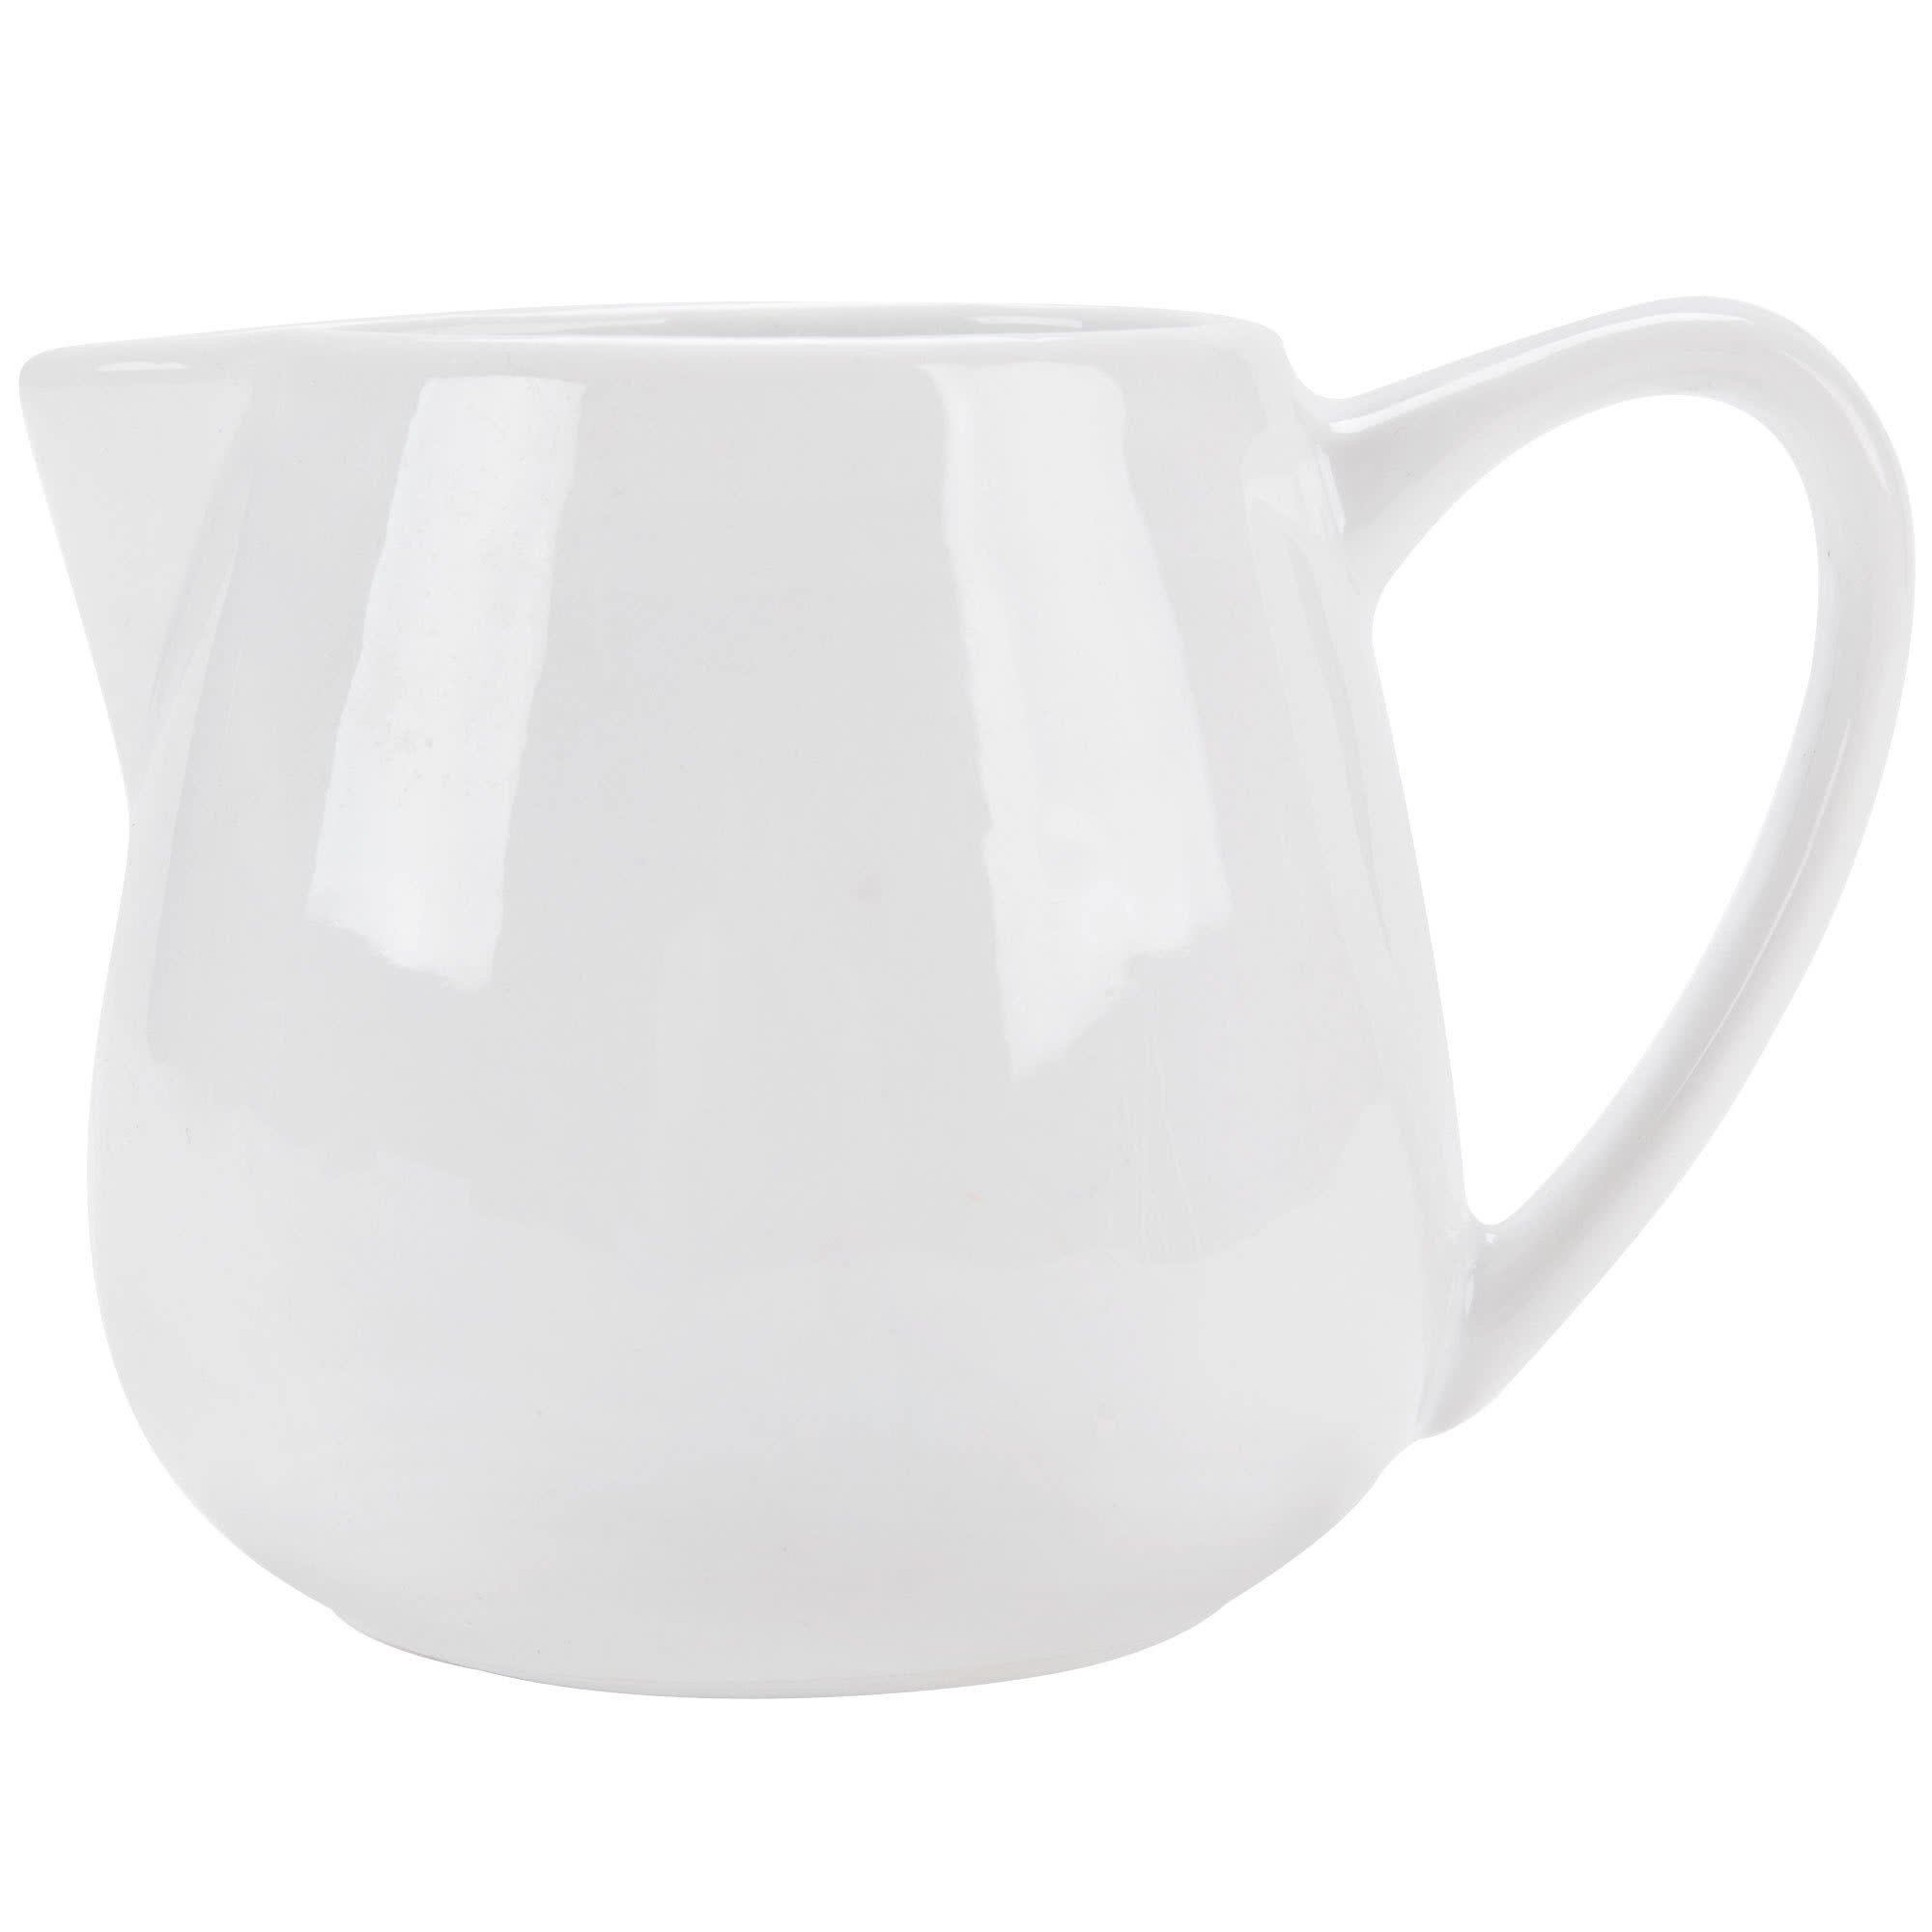 Tabletop King PC-406 Bright White Porcelain 6 oz. Creamer with Handle - 36/Case